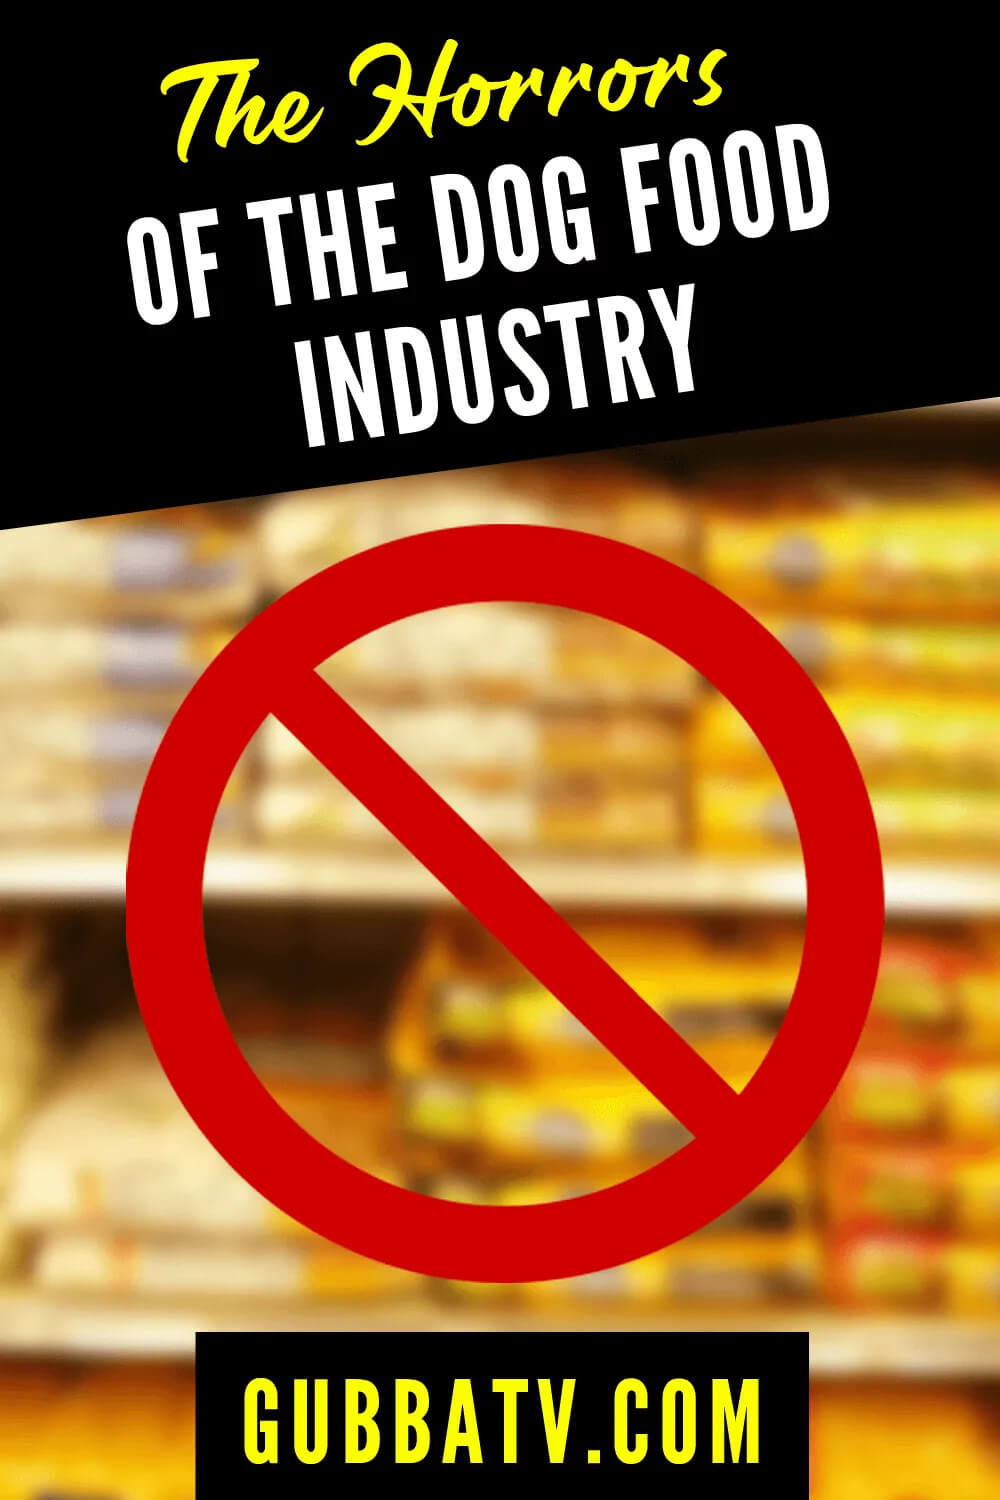 The Horrors Of The Dog Food Industry